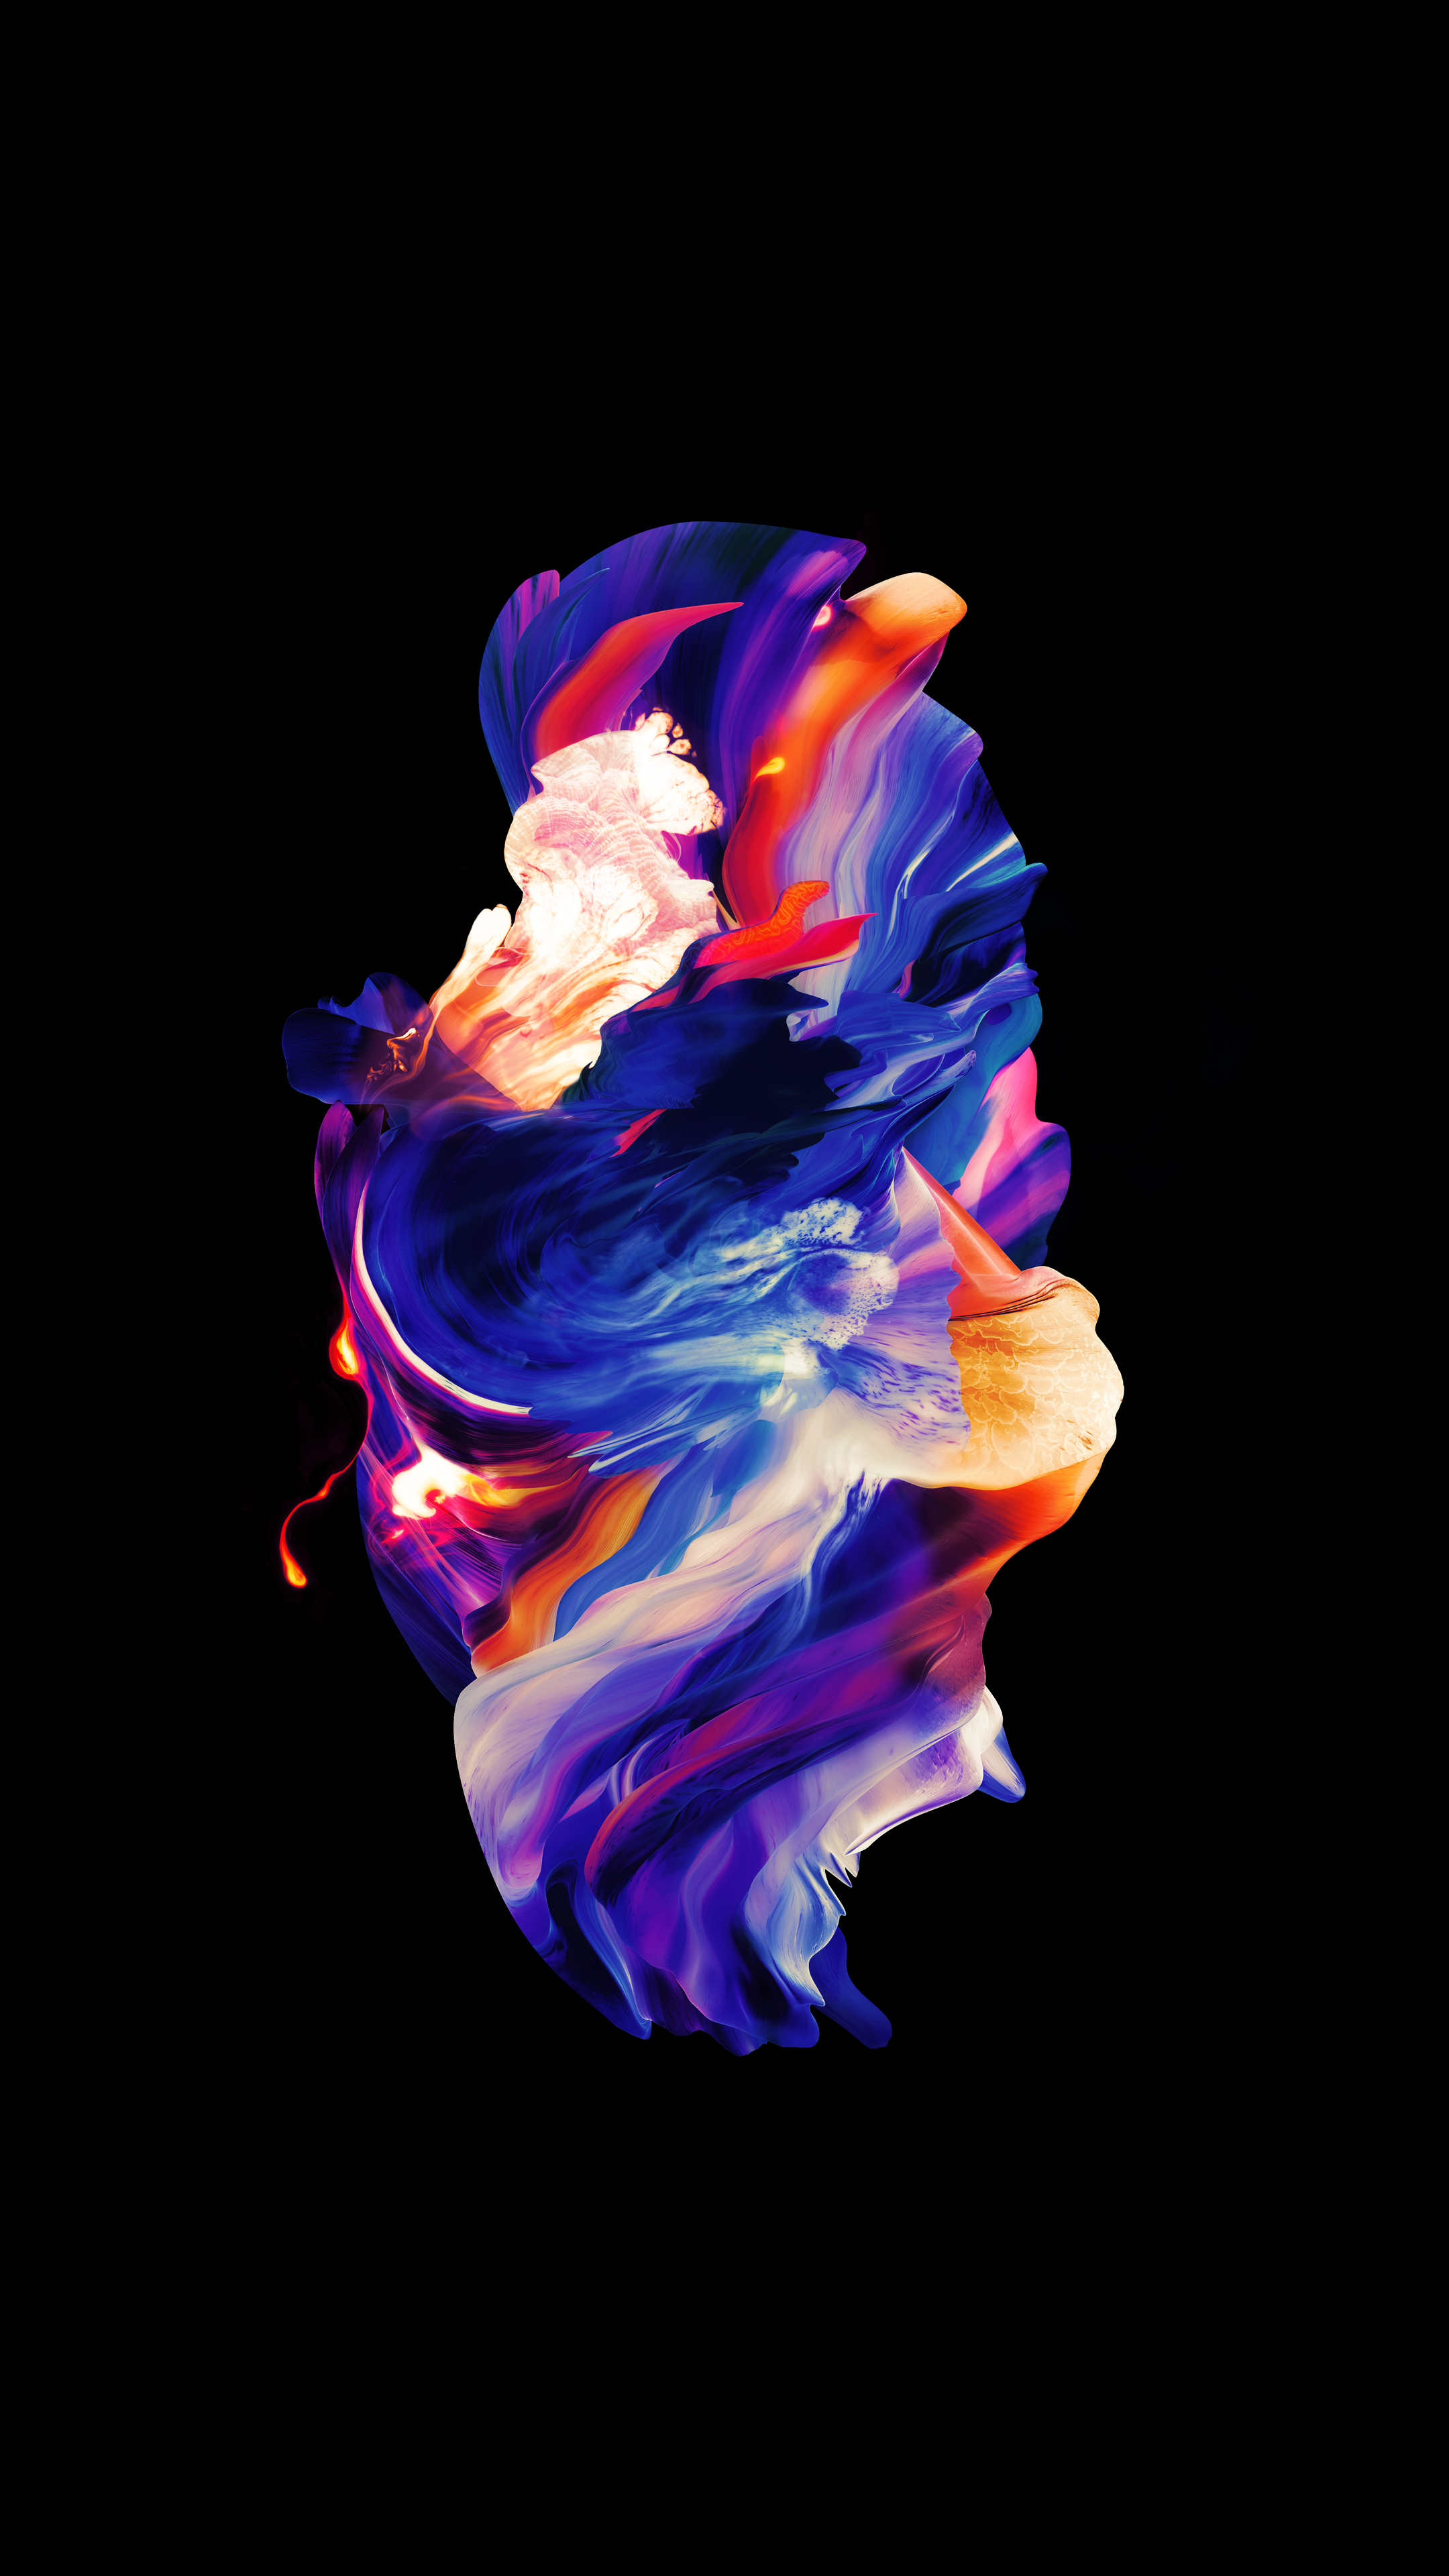 Oneplus 5 Wallpapers Hampus Olsson Portfolio Of 2018